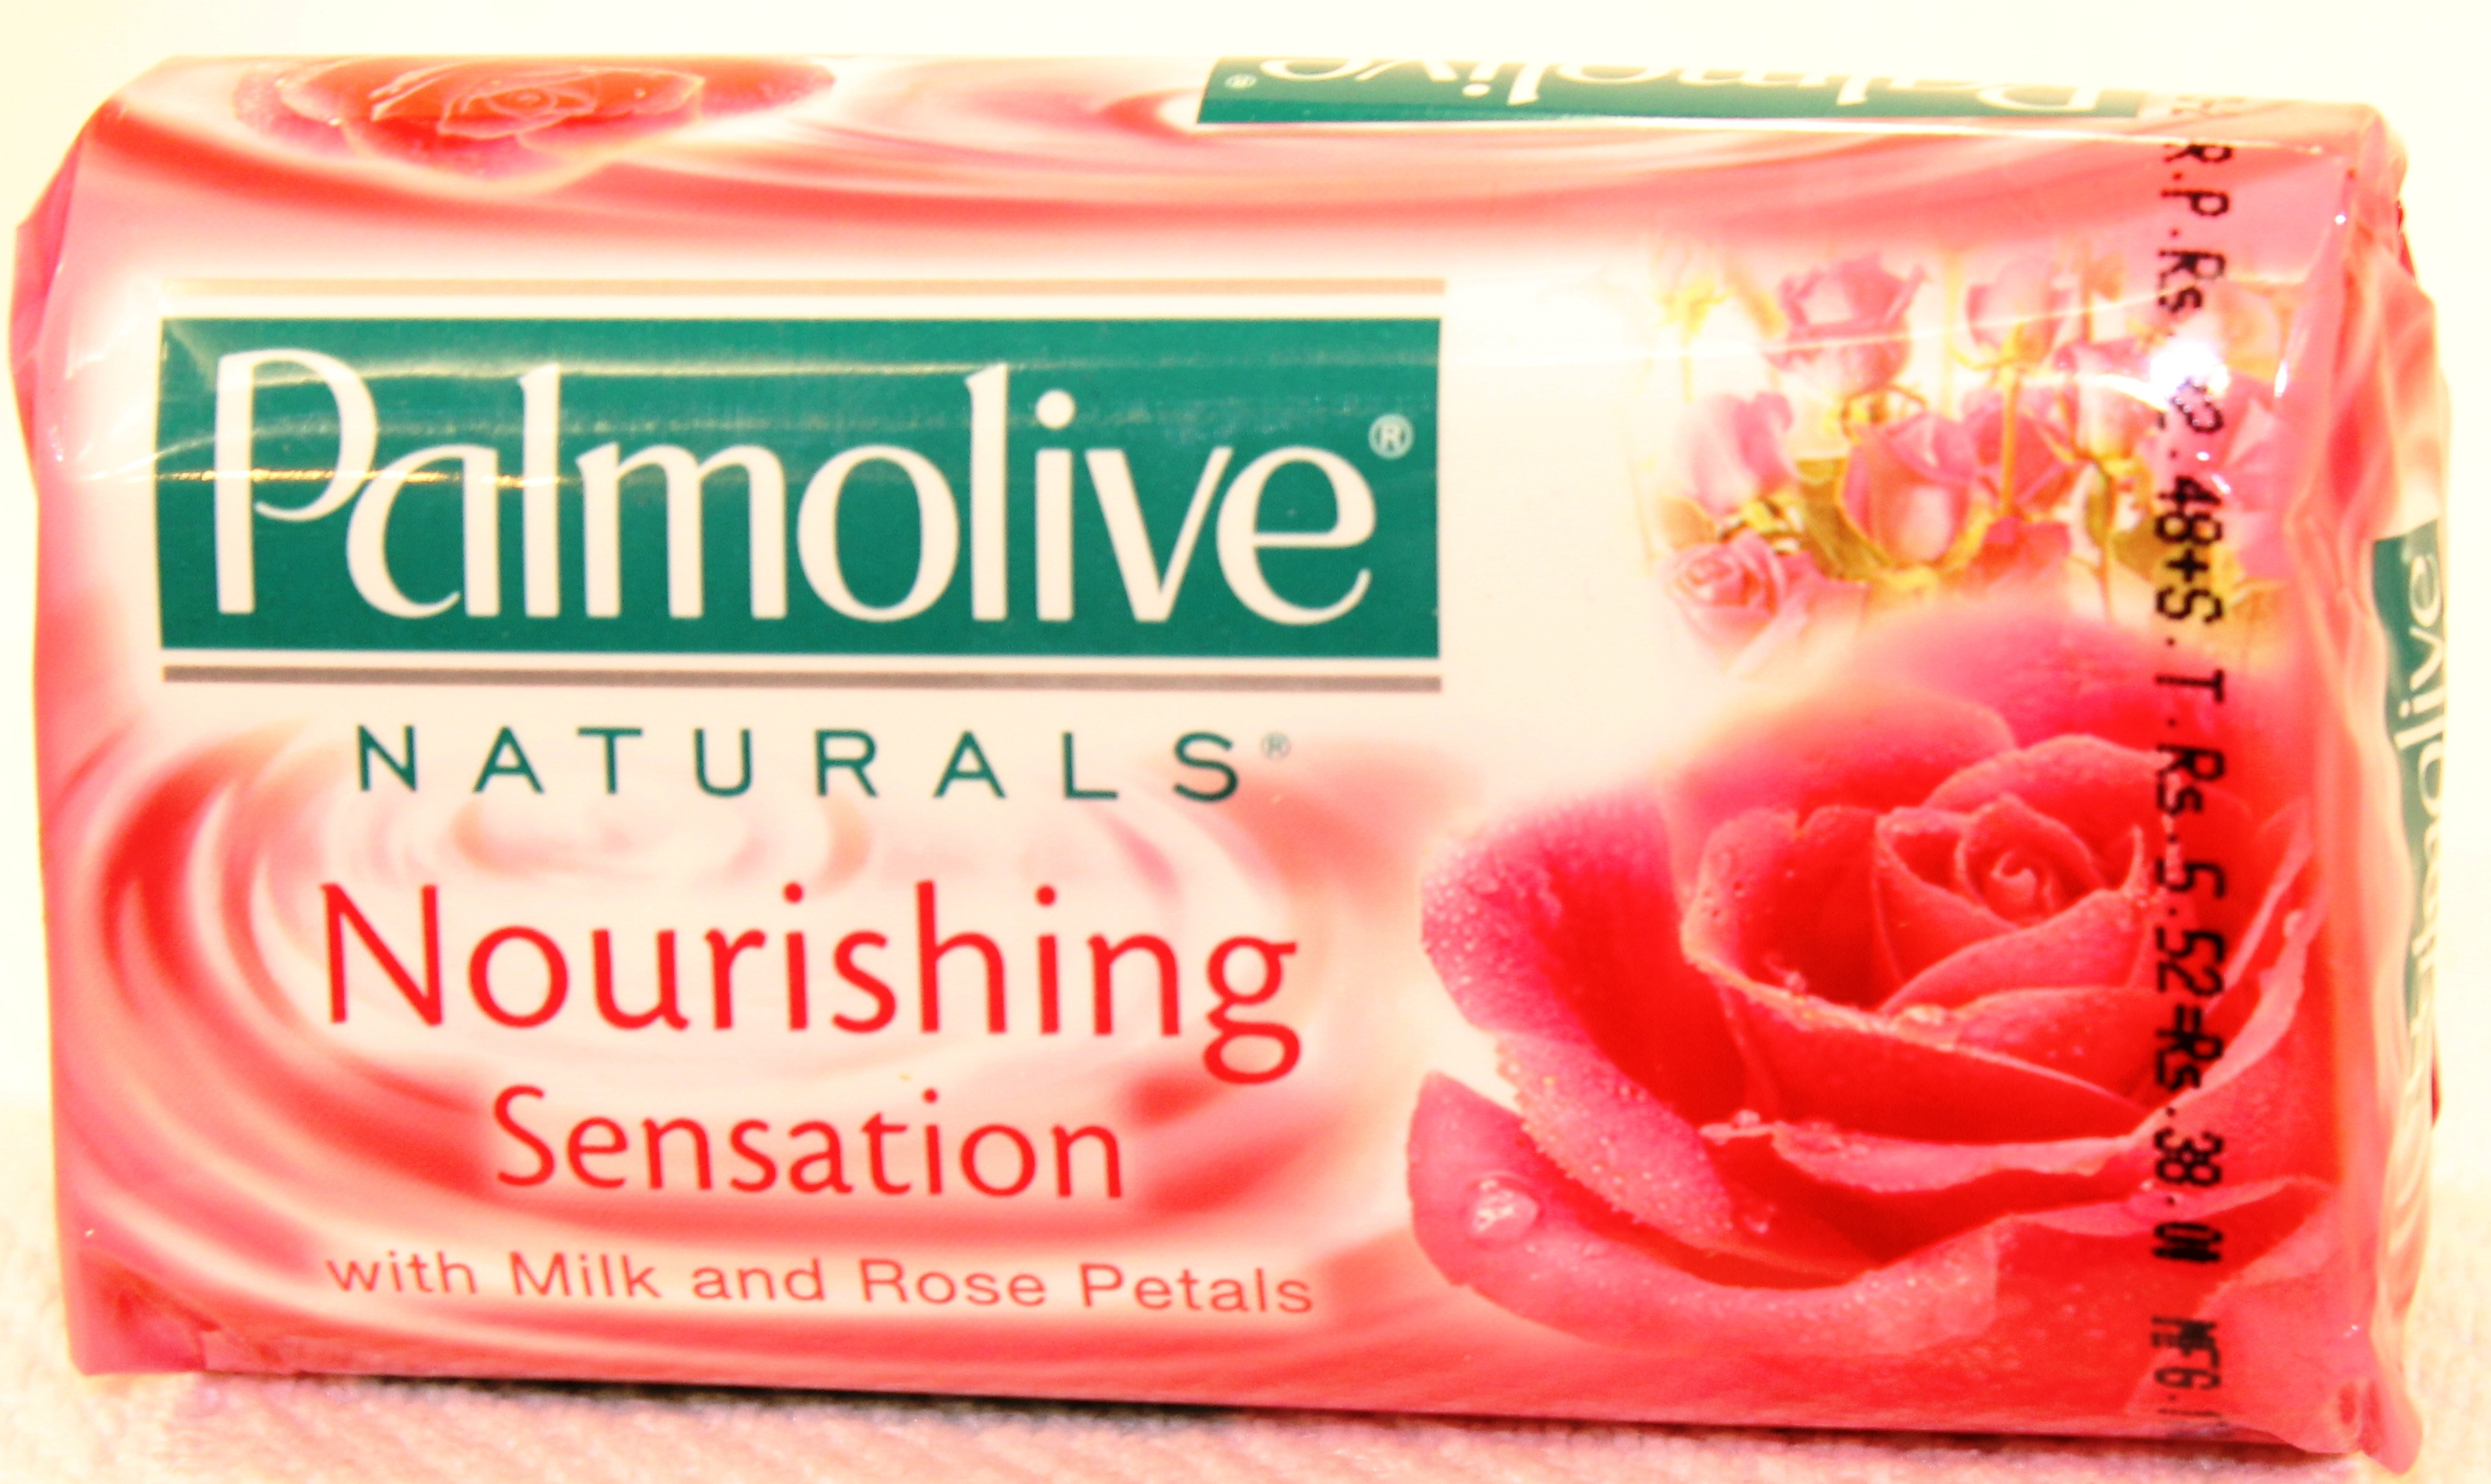 Palmolive Nourishing Sensation Soap (Pink) 115gm